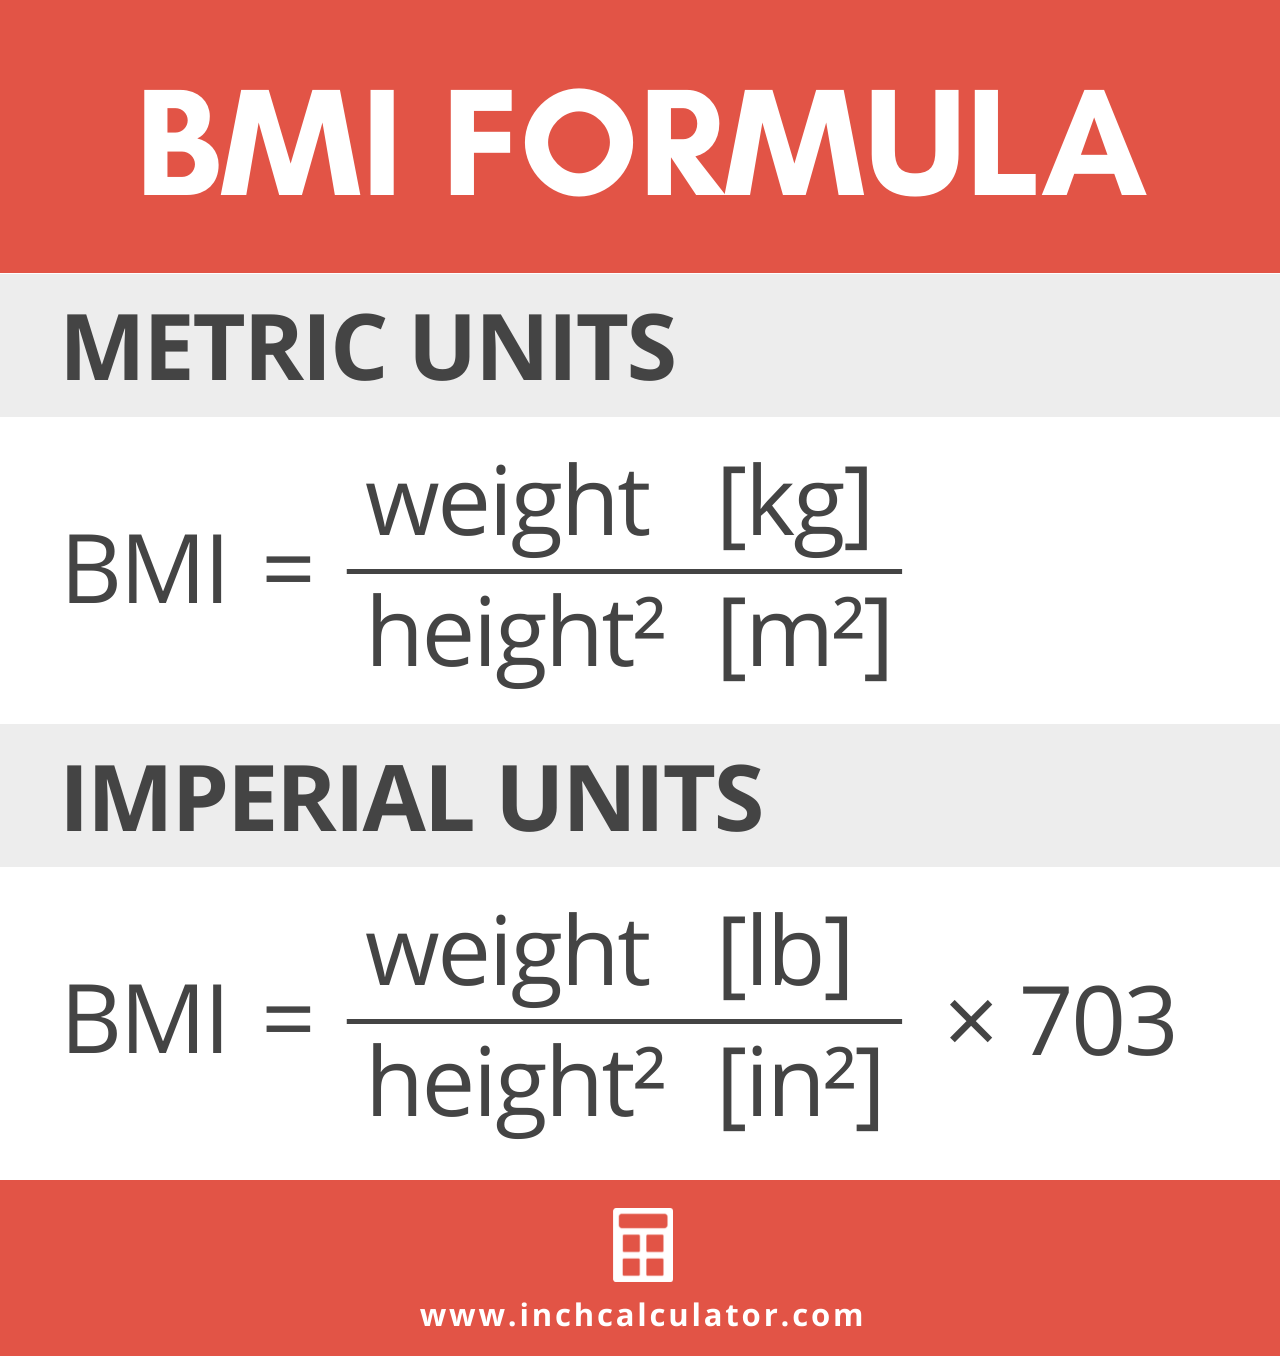 graphic showing the BMI formula, where BMI is equal to weight divided by height squared